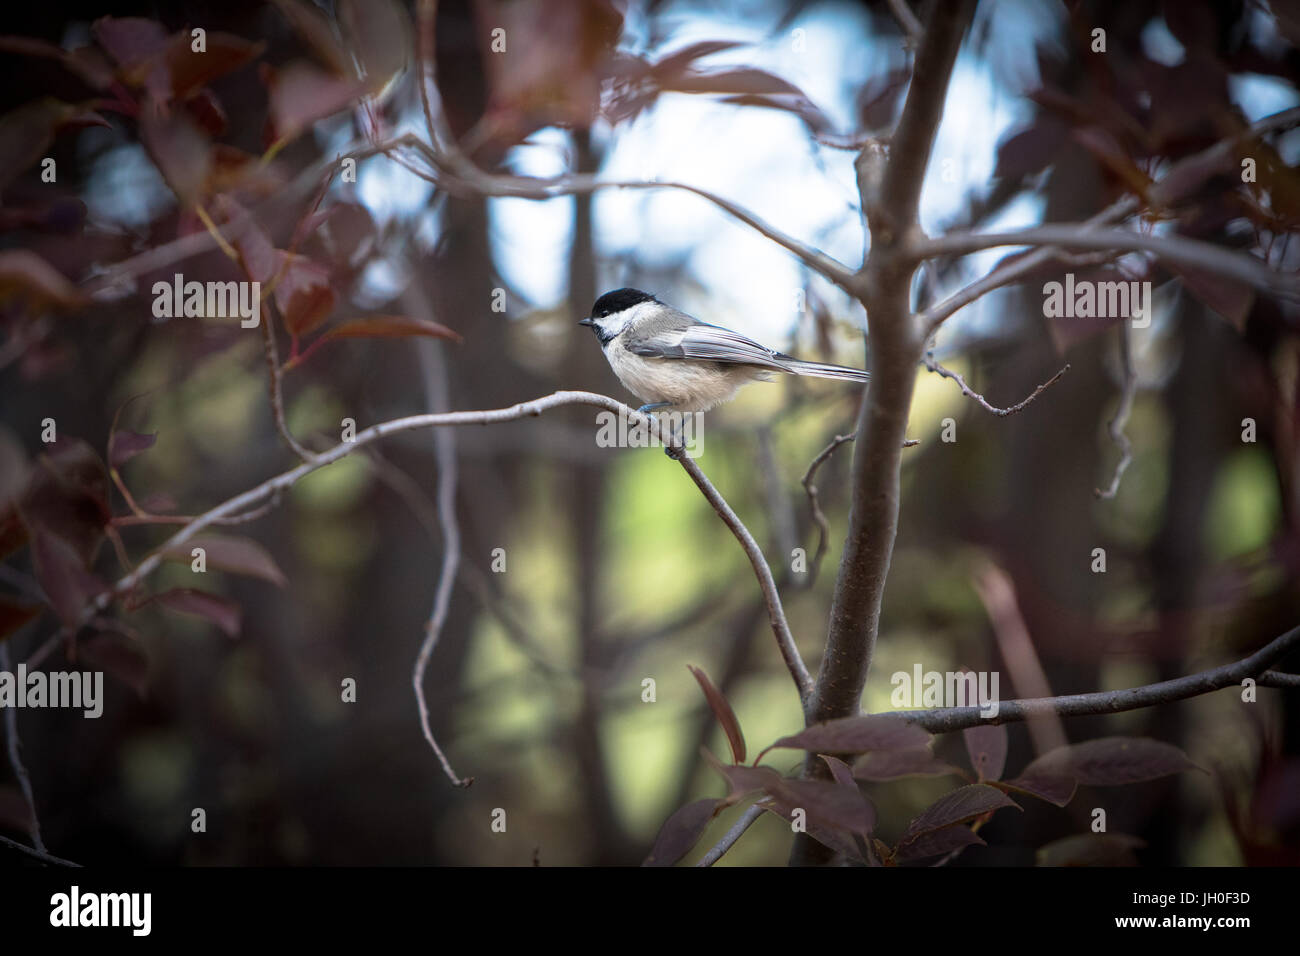 A happy little chickadee bounces from branch to branch in the early evening. - Stock Image